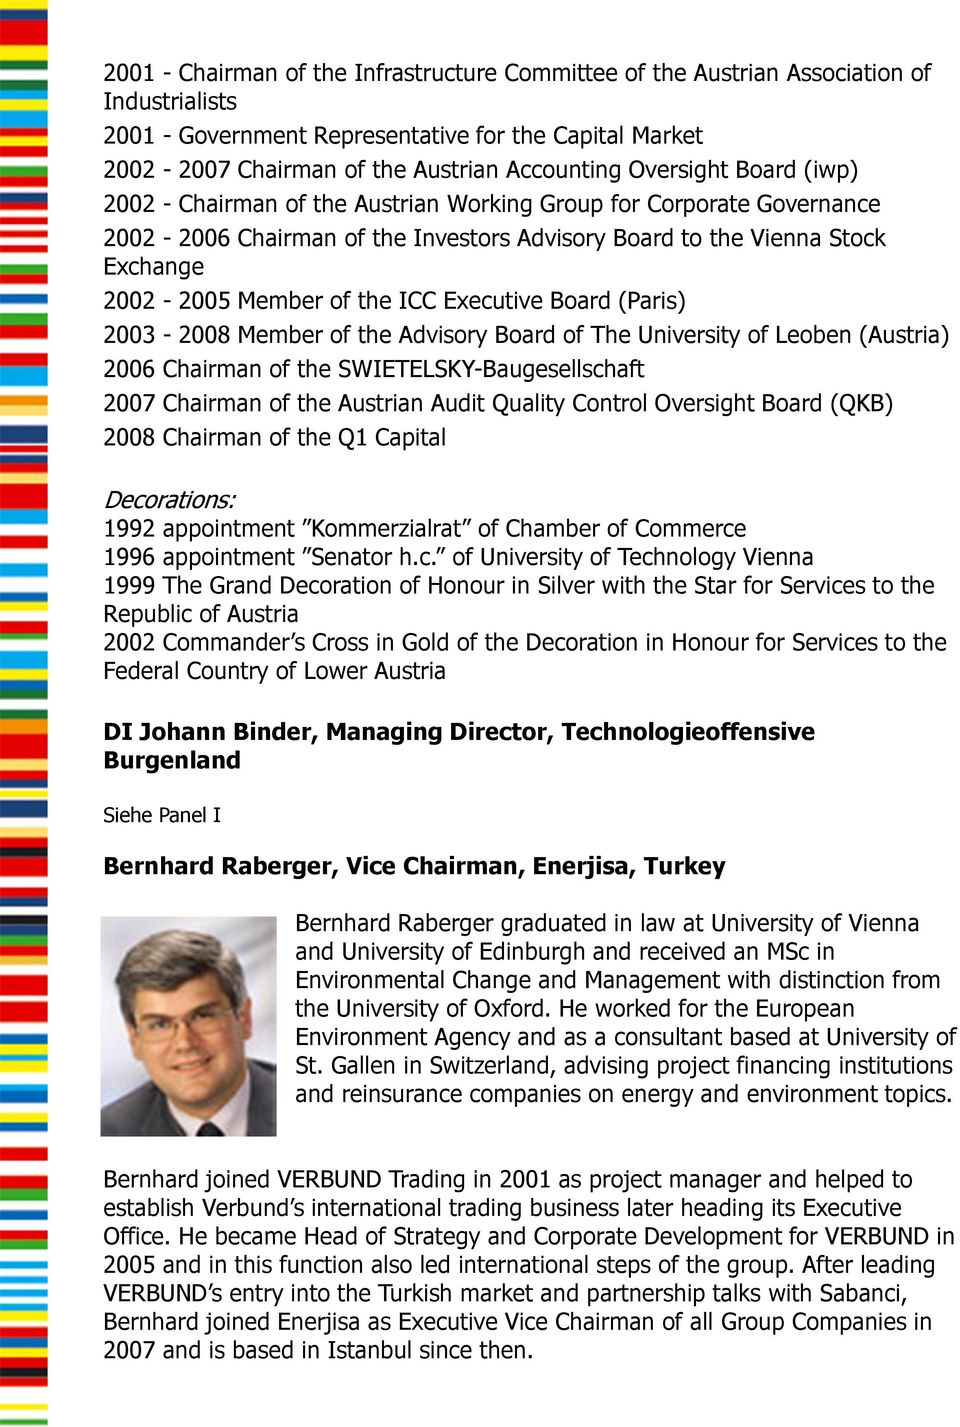 ICC Executive Board (Paris) 2003-2008 Member of the Advisory Board of The University of Leoben (Austria) 2006 Chairman of the SWIETELSKY-Baugesellschaft 2007 Chairman of the Austrian Audit Quality